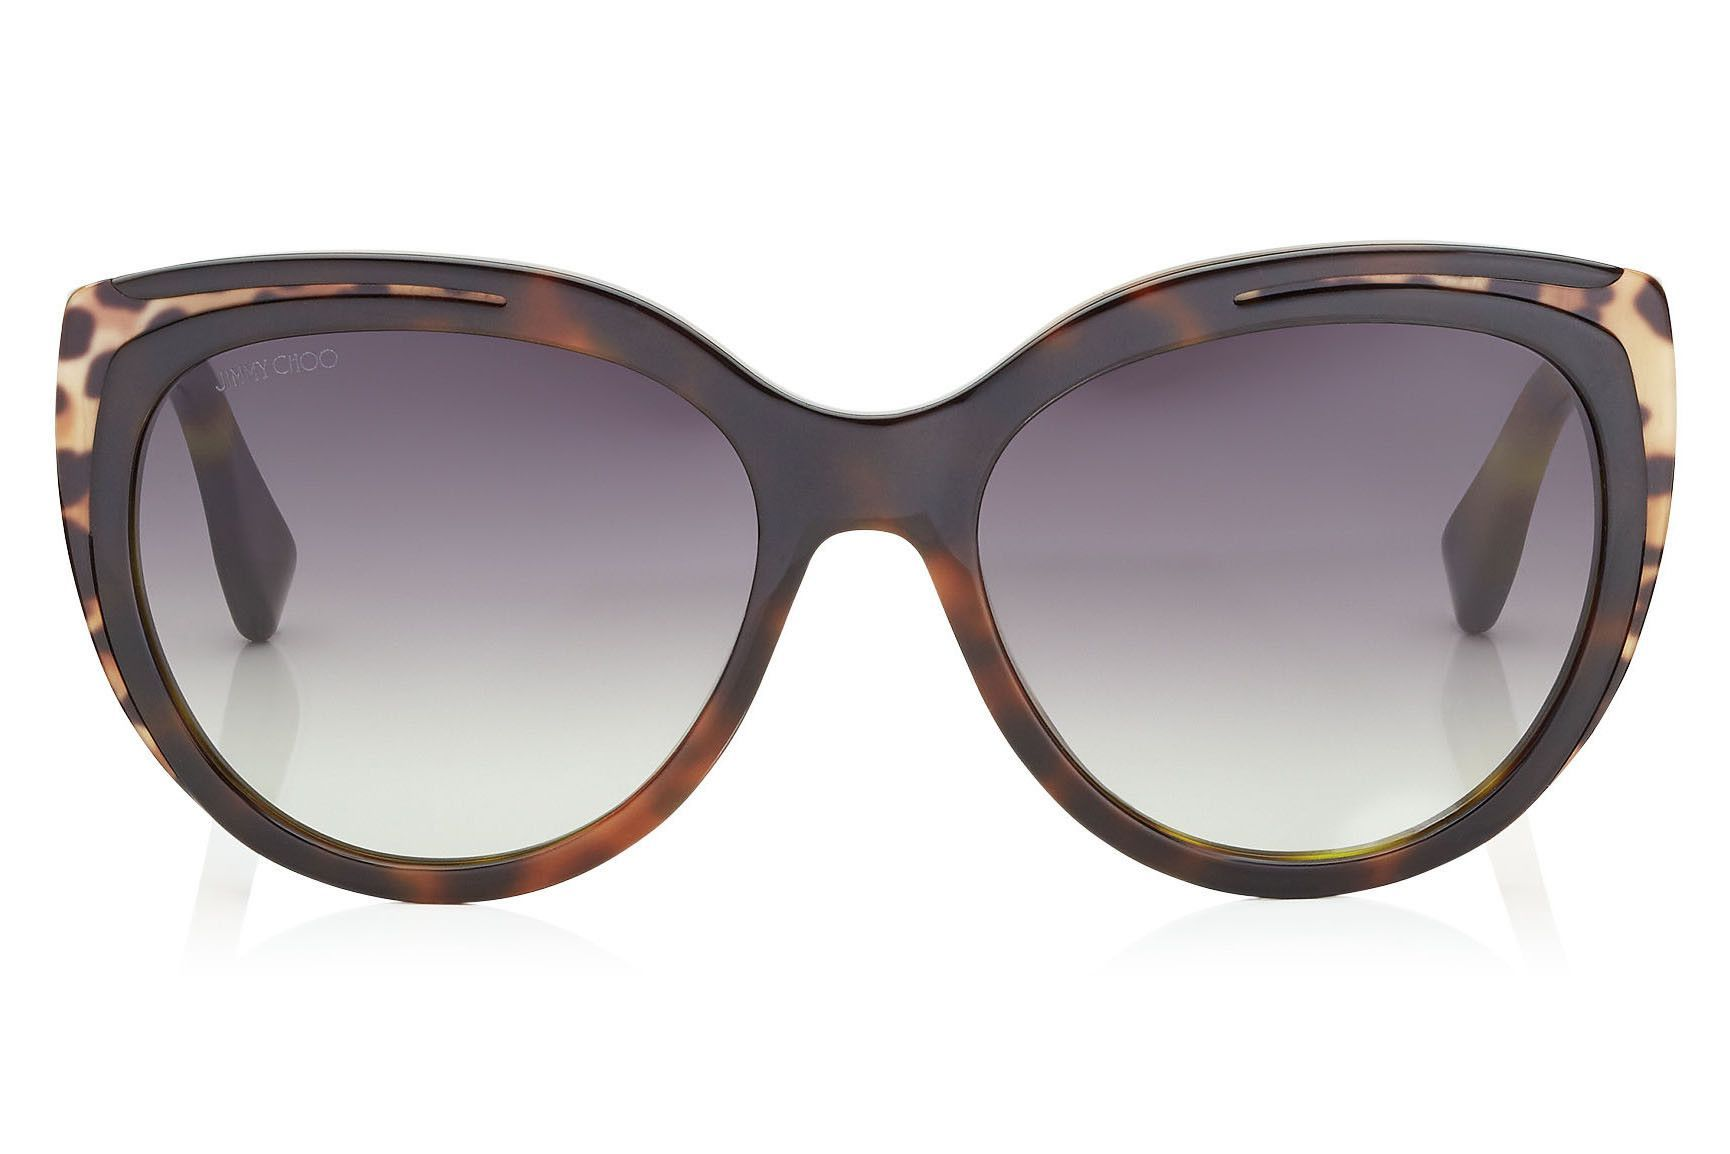 833410030777 Jimmy Choo - Nicky Havana Brown and Animal Print Round Framed Sunglasses   jimmychoosunglasses